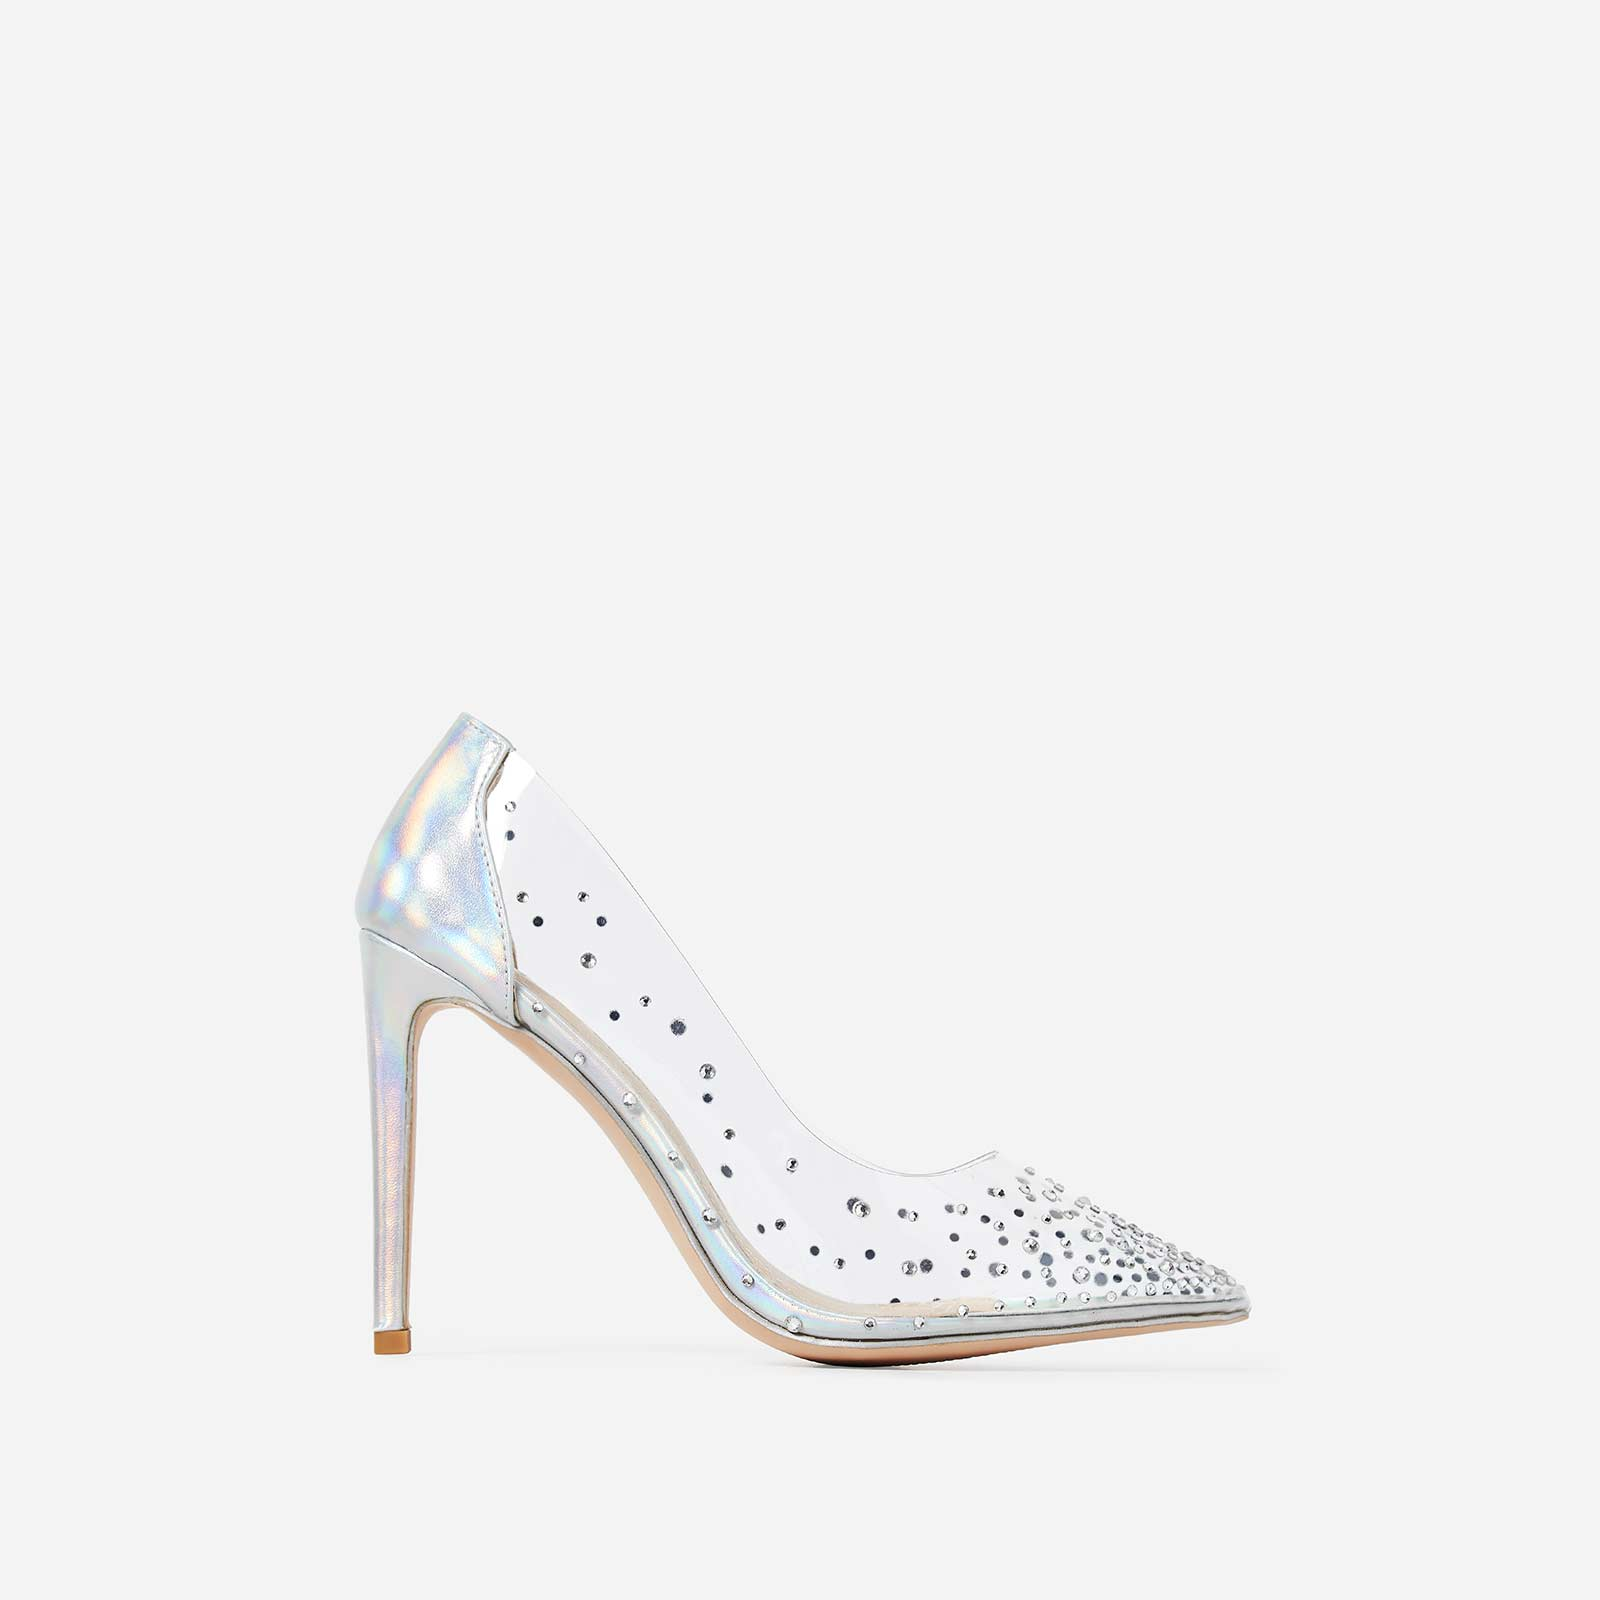 Girls Best Friend Diamante Perspex Court Heel In Silver Patent